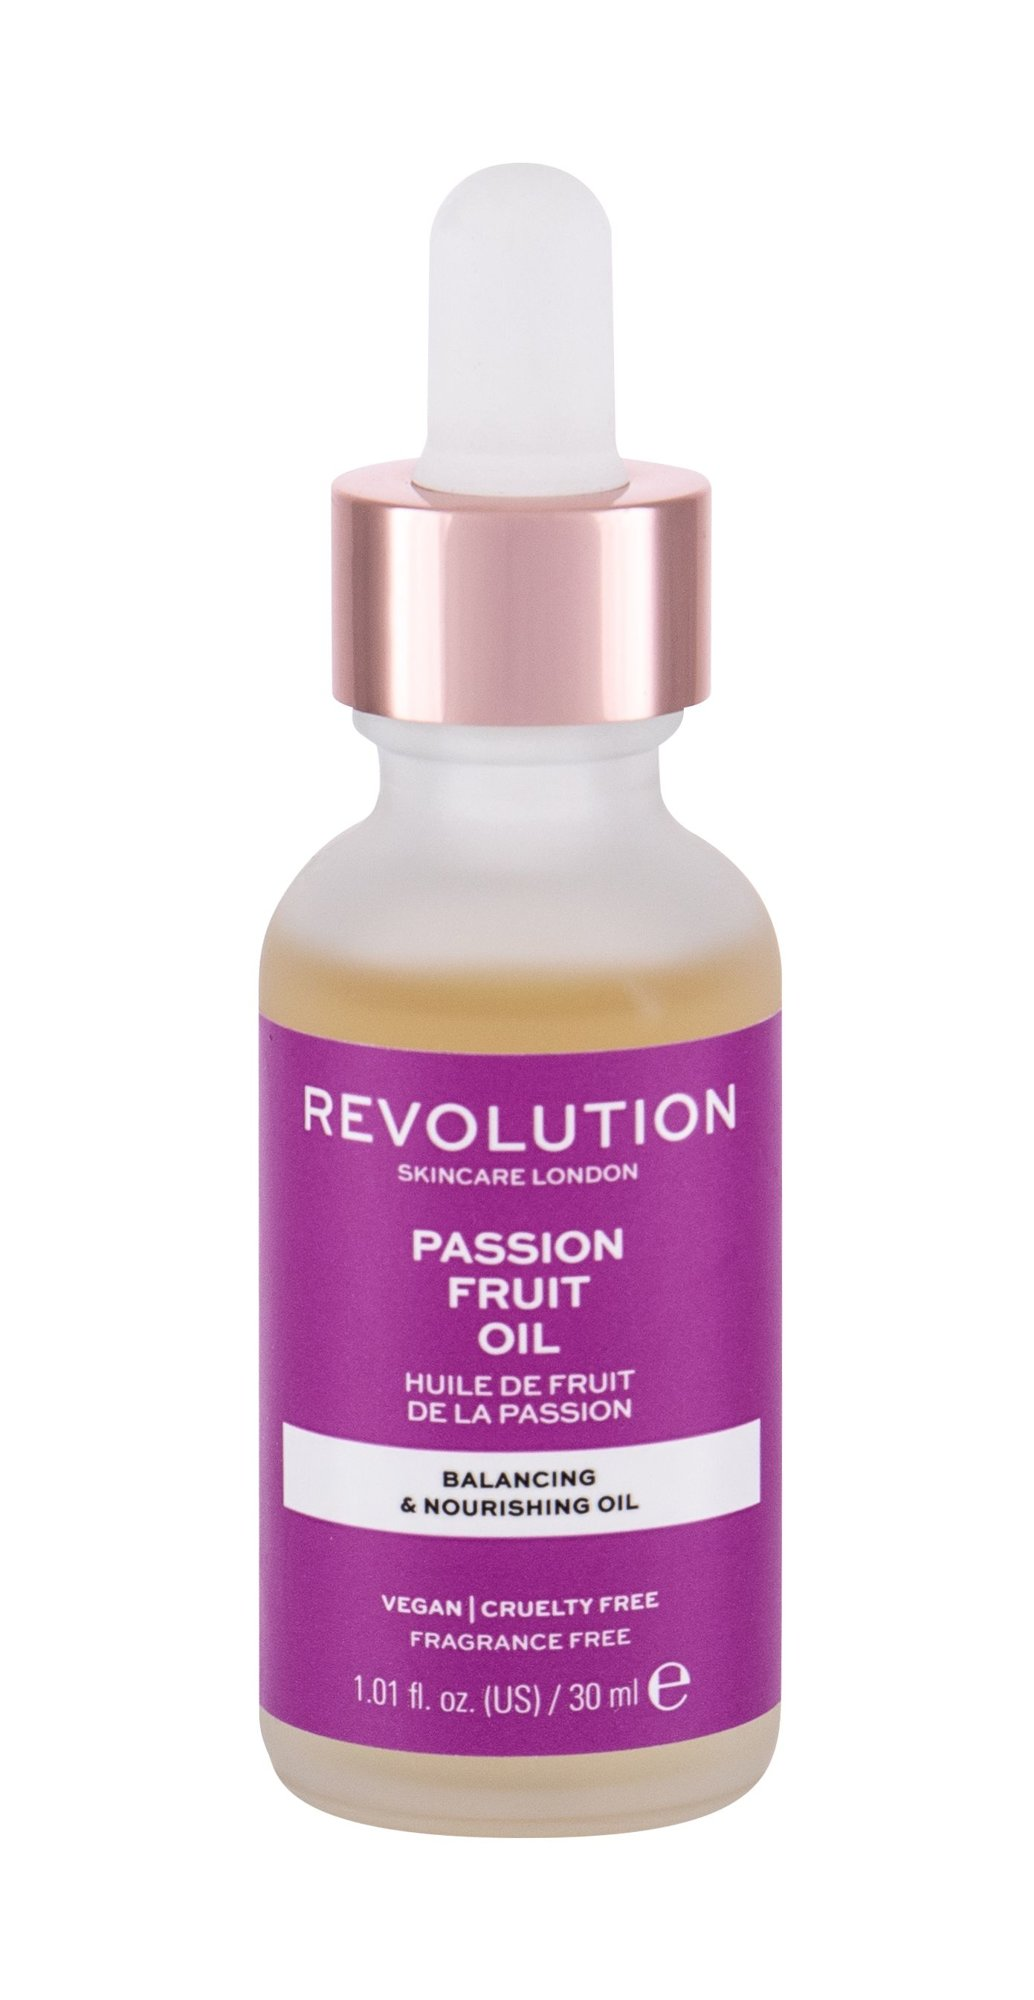 Makeup Revolution London Skincare Passion Fruit Oil, arcápoló szérum 30ml